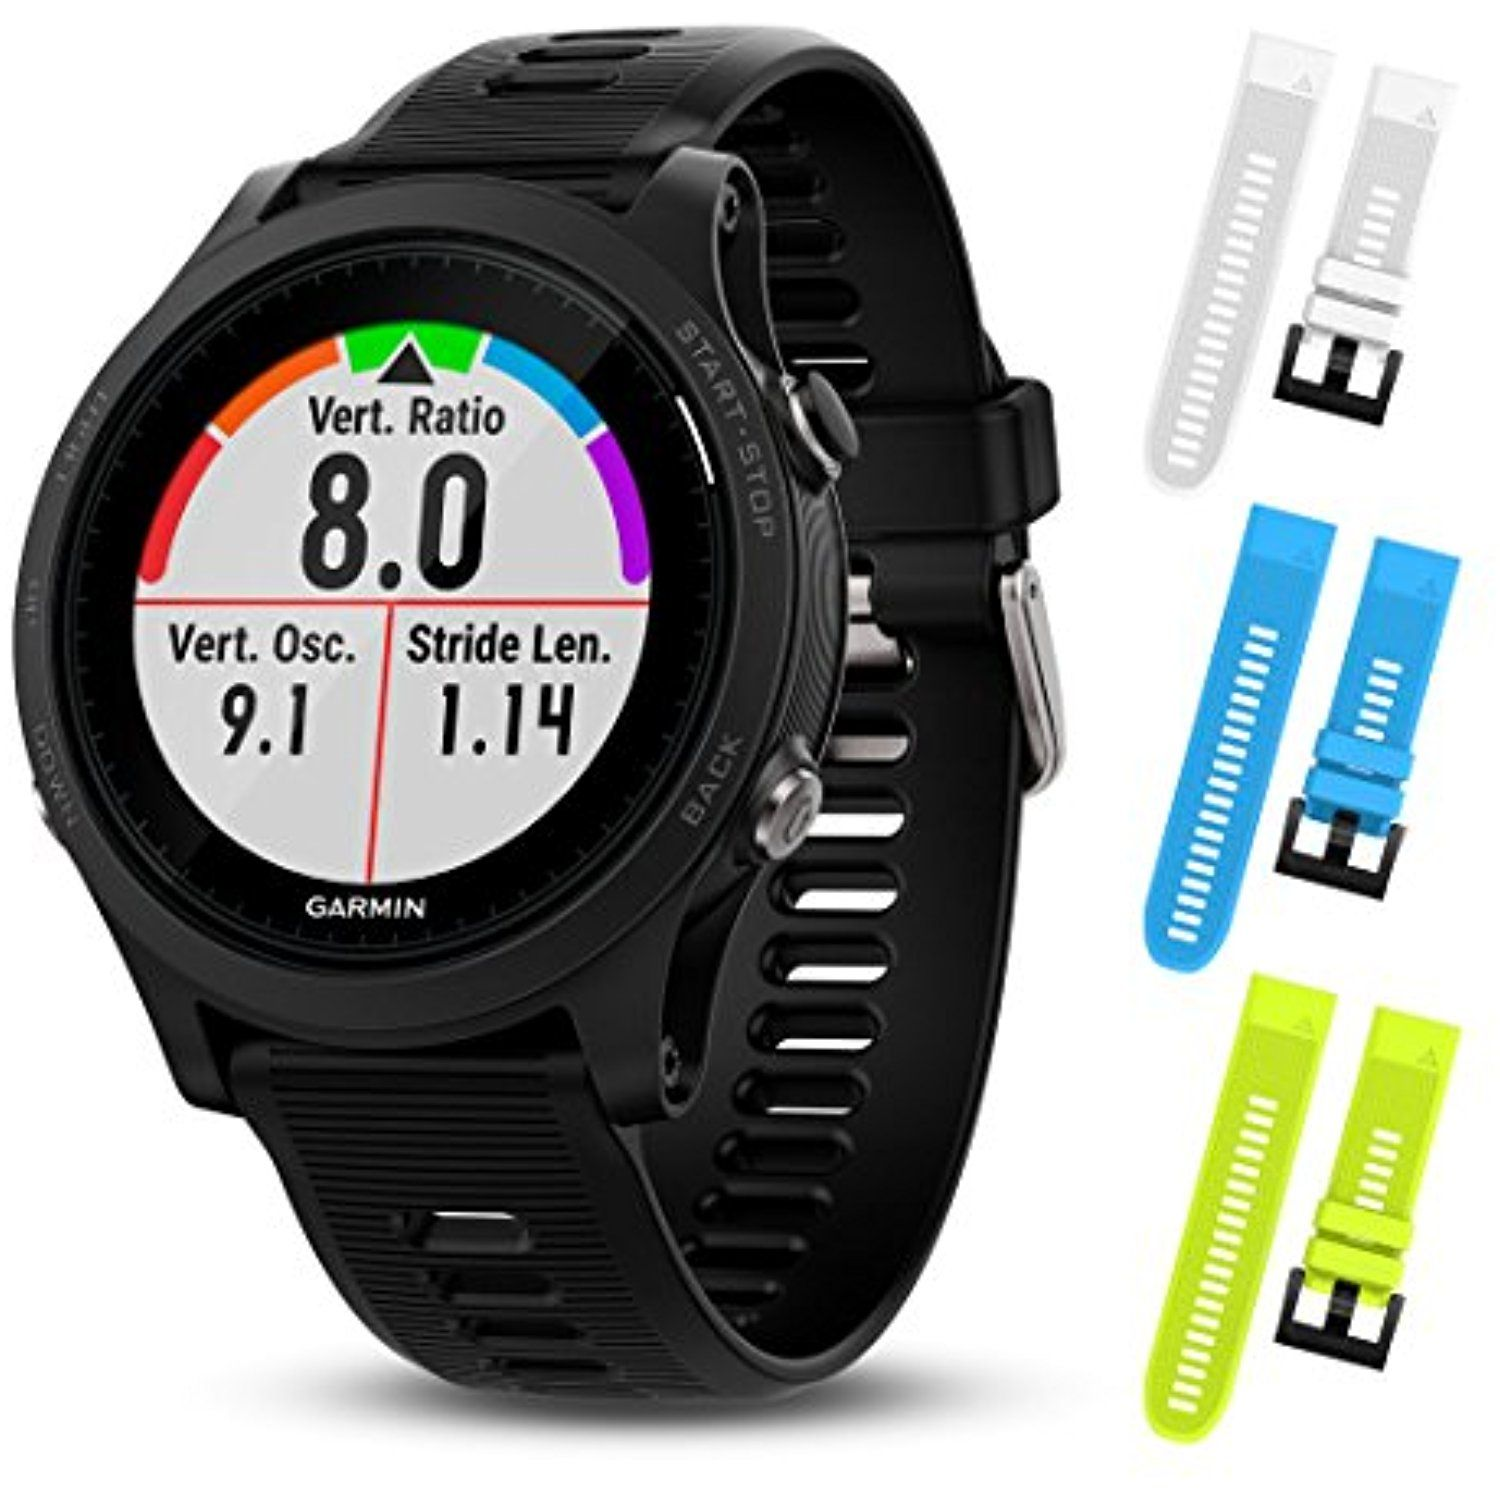 Garmin Forerunner 935 010 01746 00 And Three Additional Wearable4U Quick Release Silicone Watch Bands Bundle To View Further For This Item